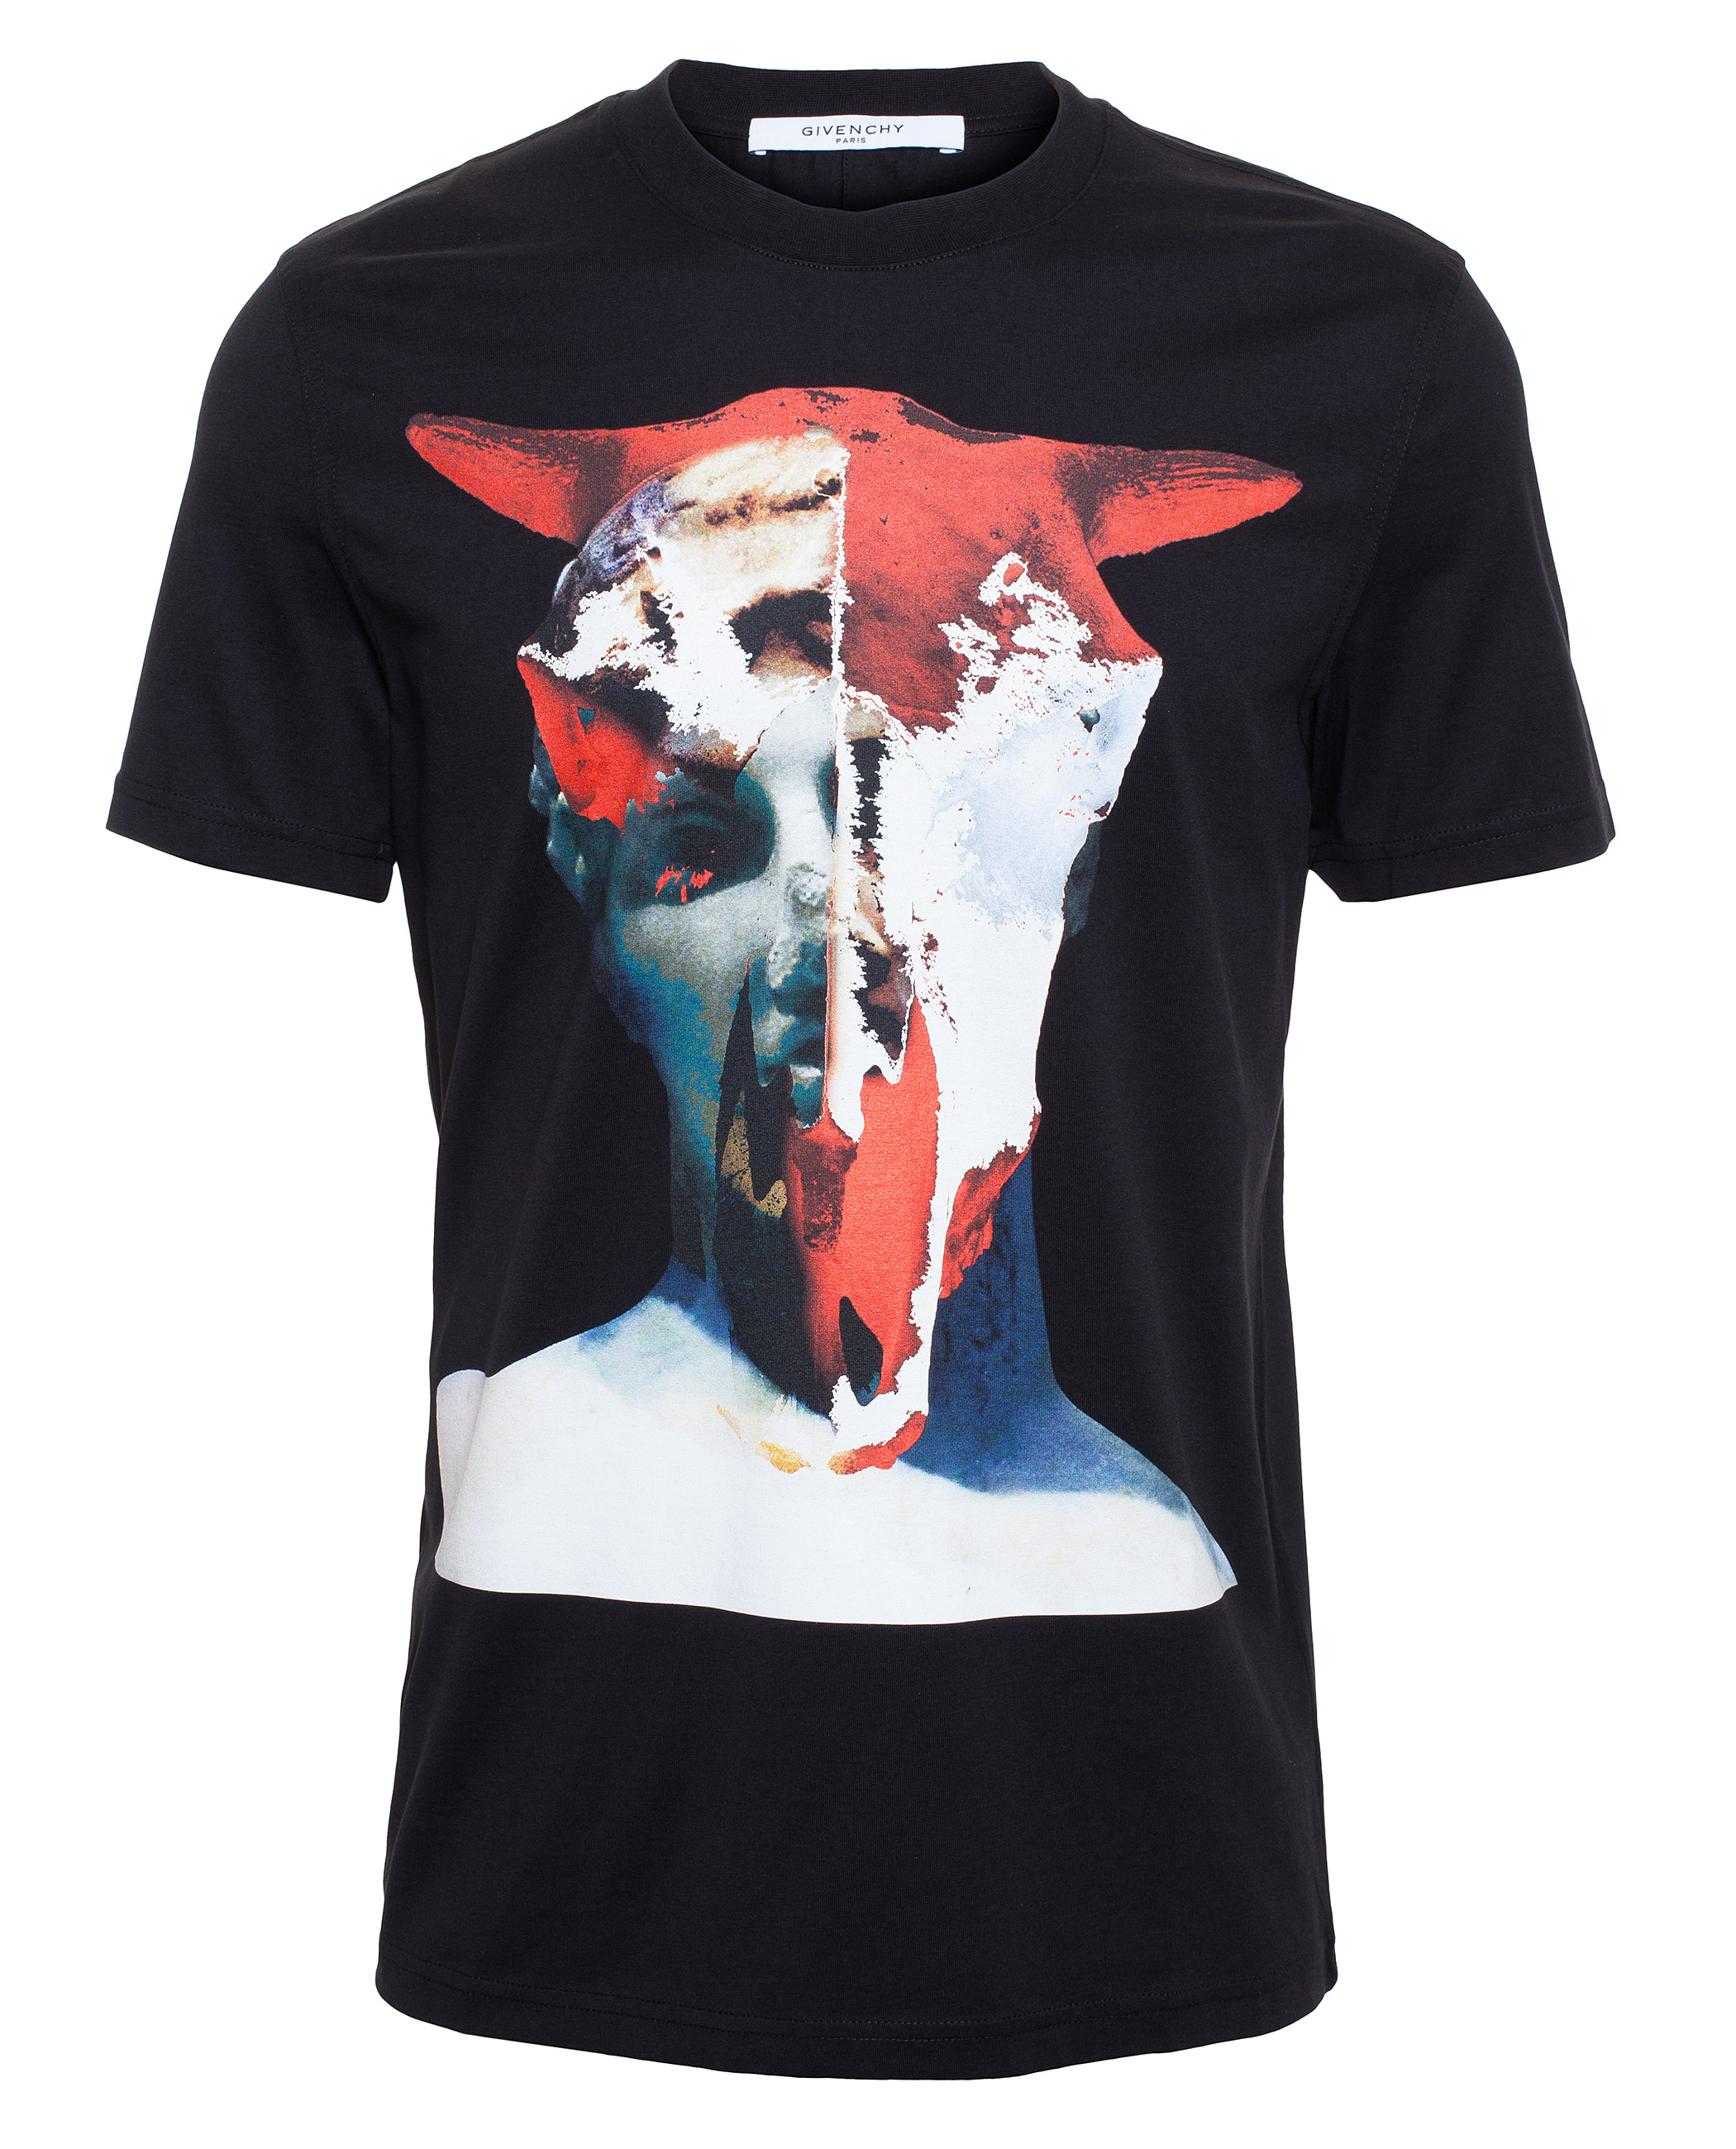 Givenchy Cow Skull And Statue T Shirt In Black For Men Lyst